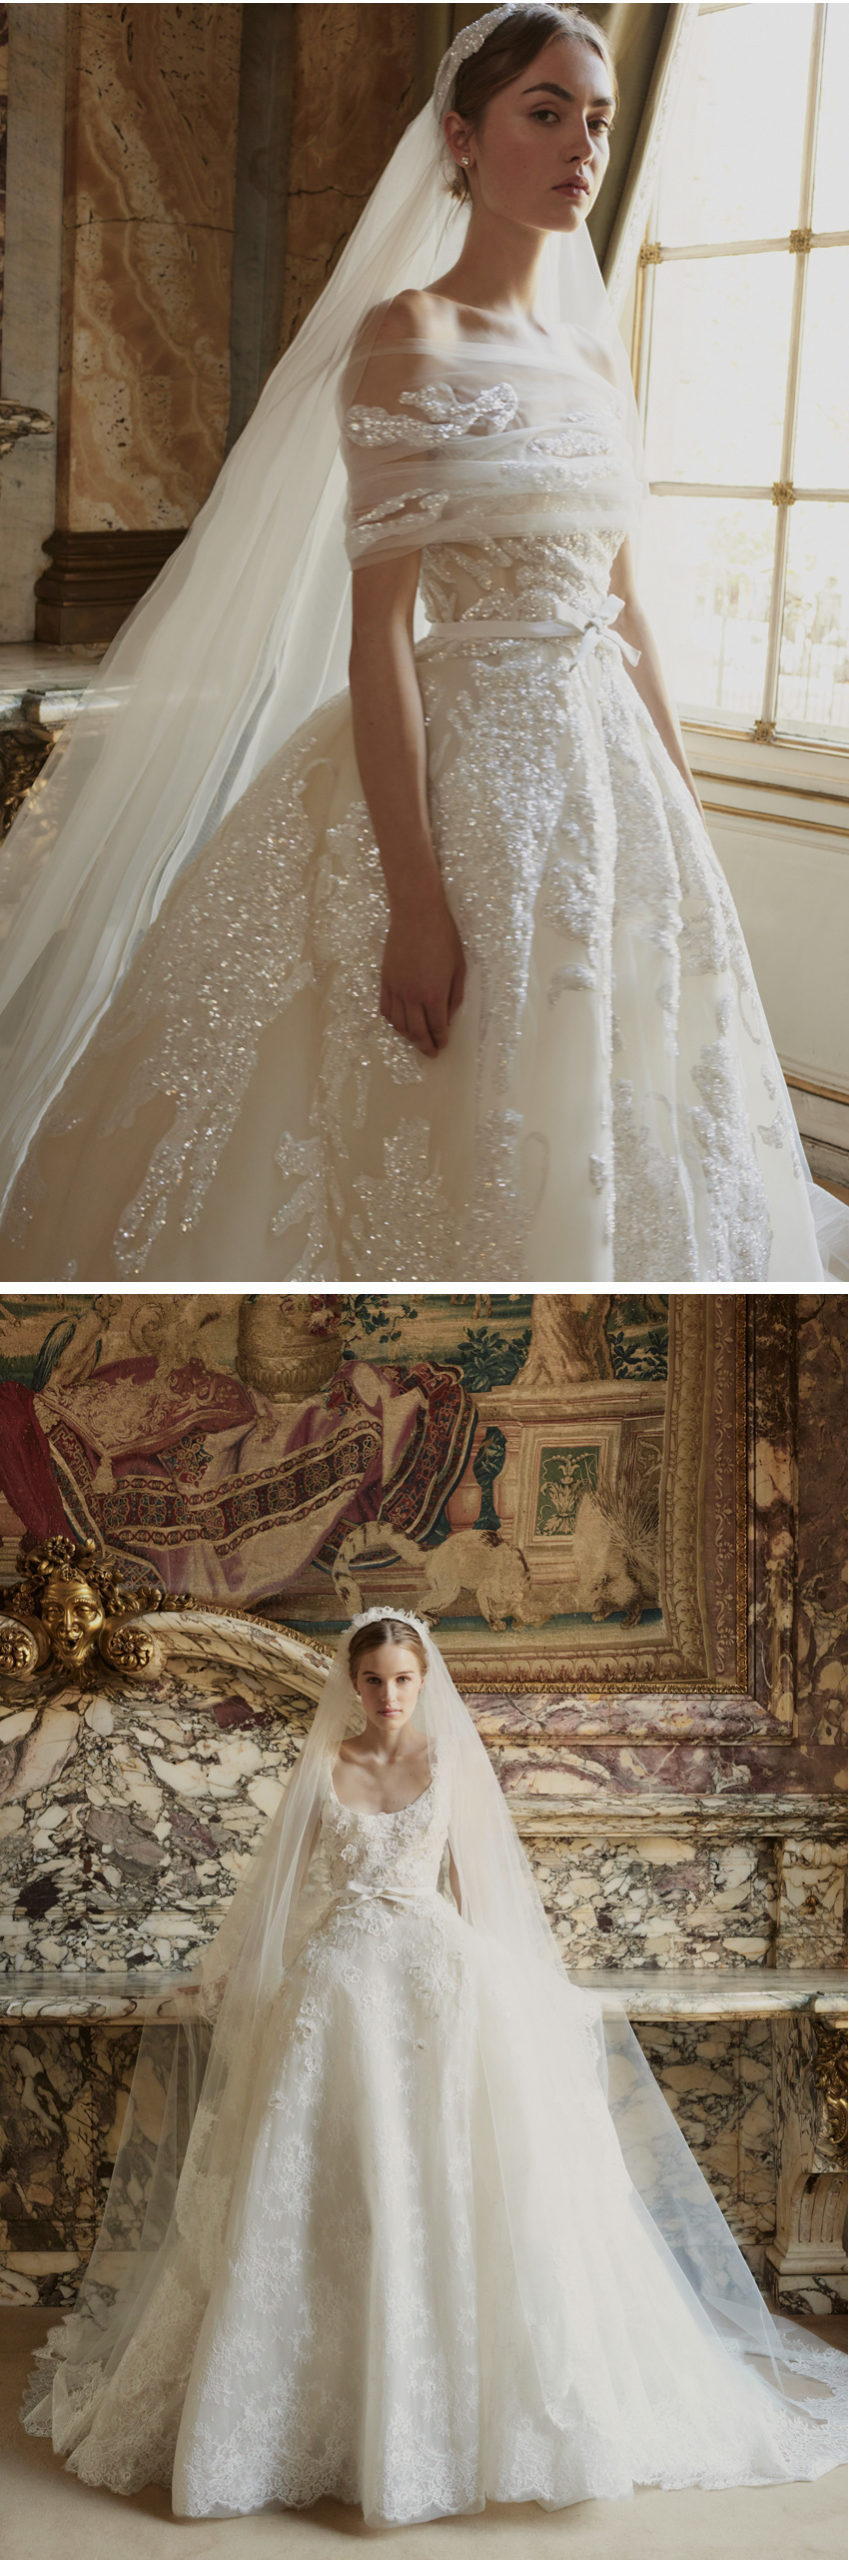 Elie Saab Fall 2022 Bridal Collection Portrait in Motion allows the bride to look majestic